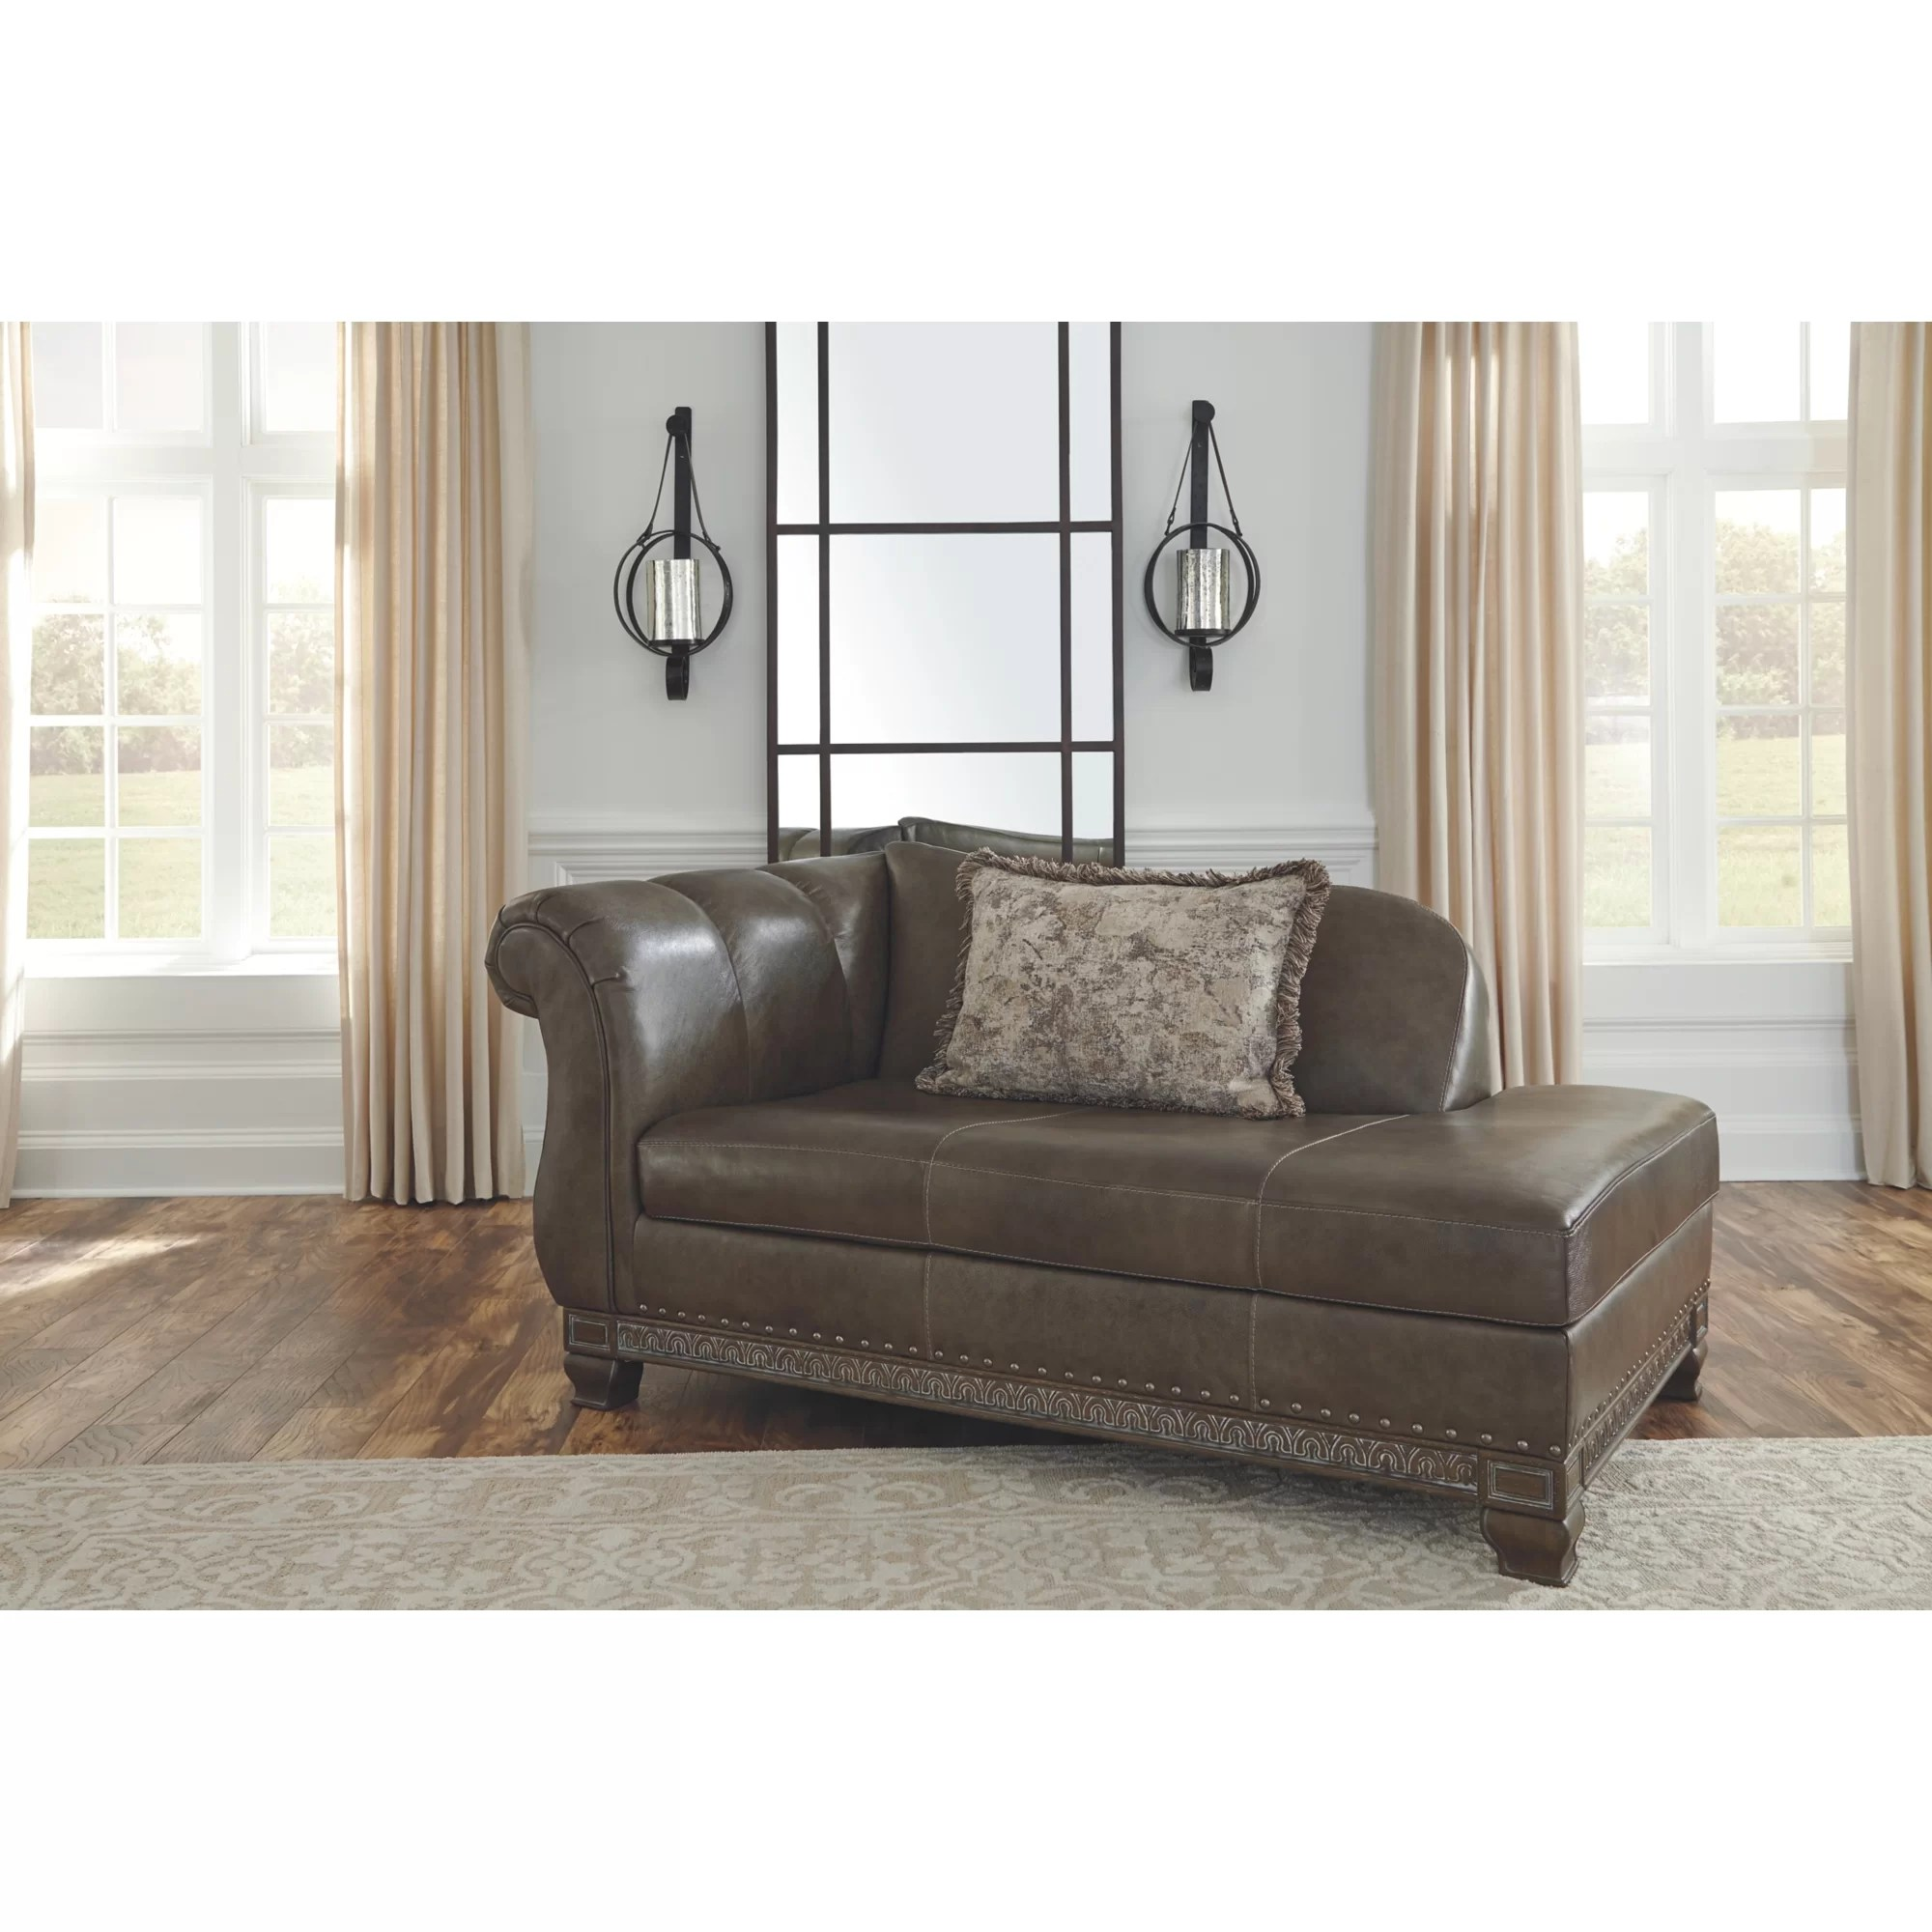 bunnell laf corner chaise lounge